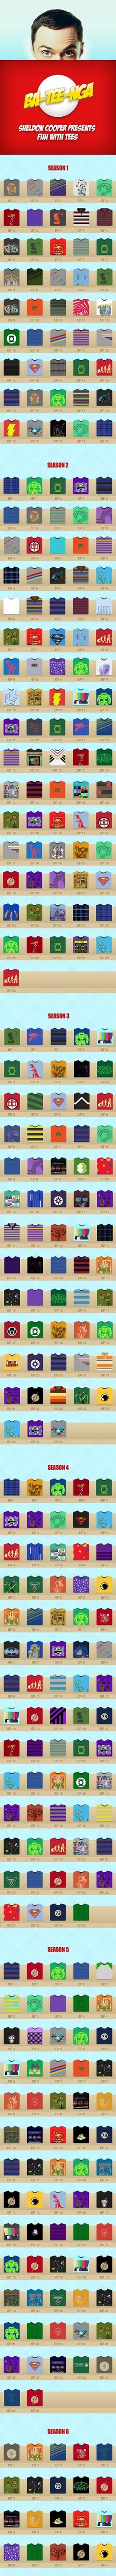 Sheldon cooper.  All the Tees!